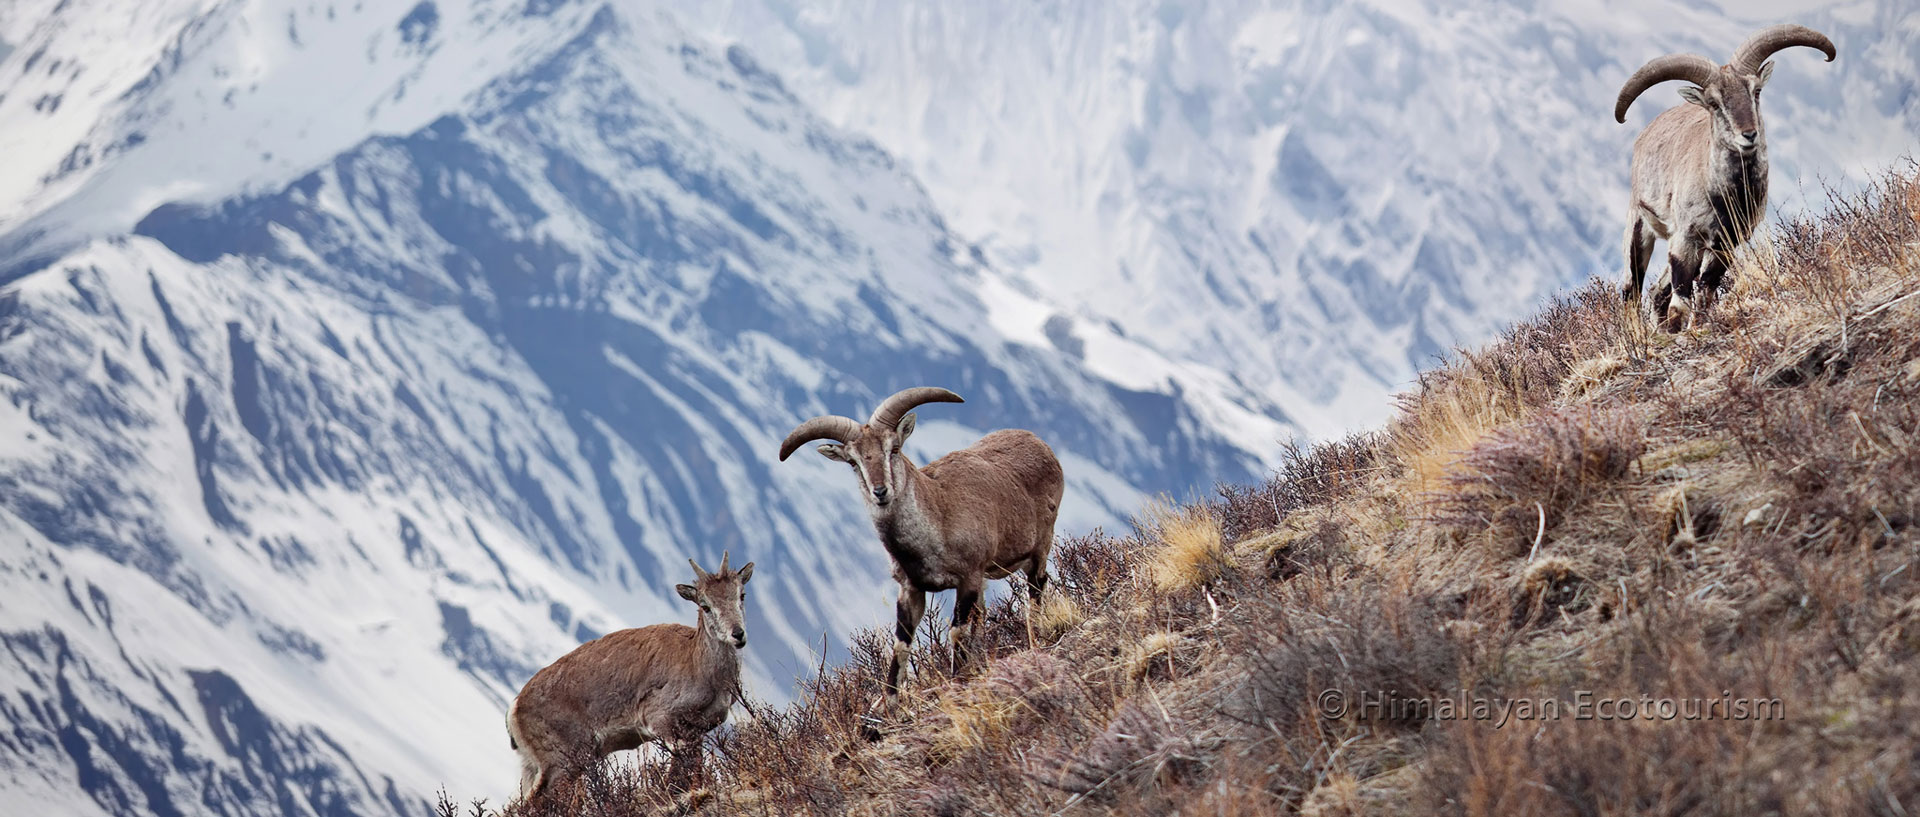 Blue sheeps are found abundantly in the GHNP